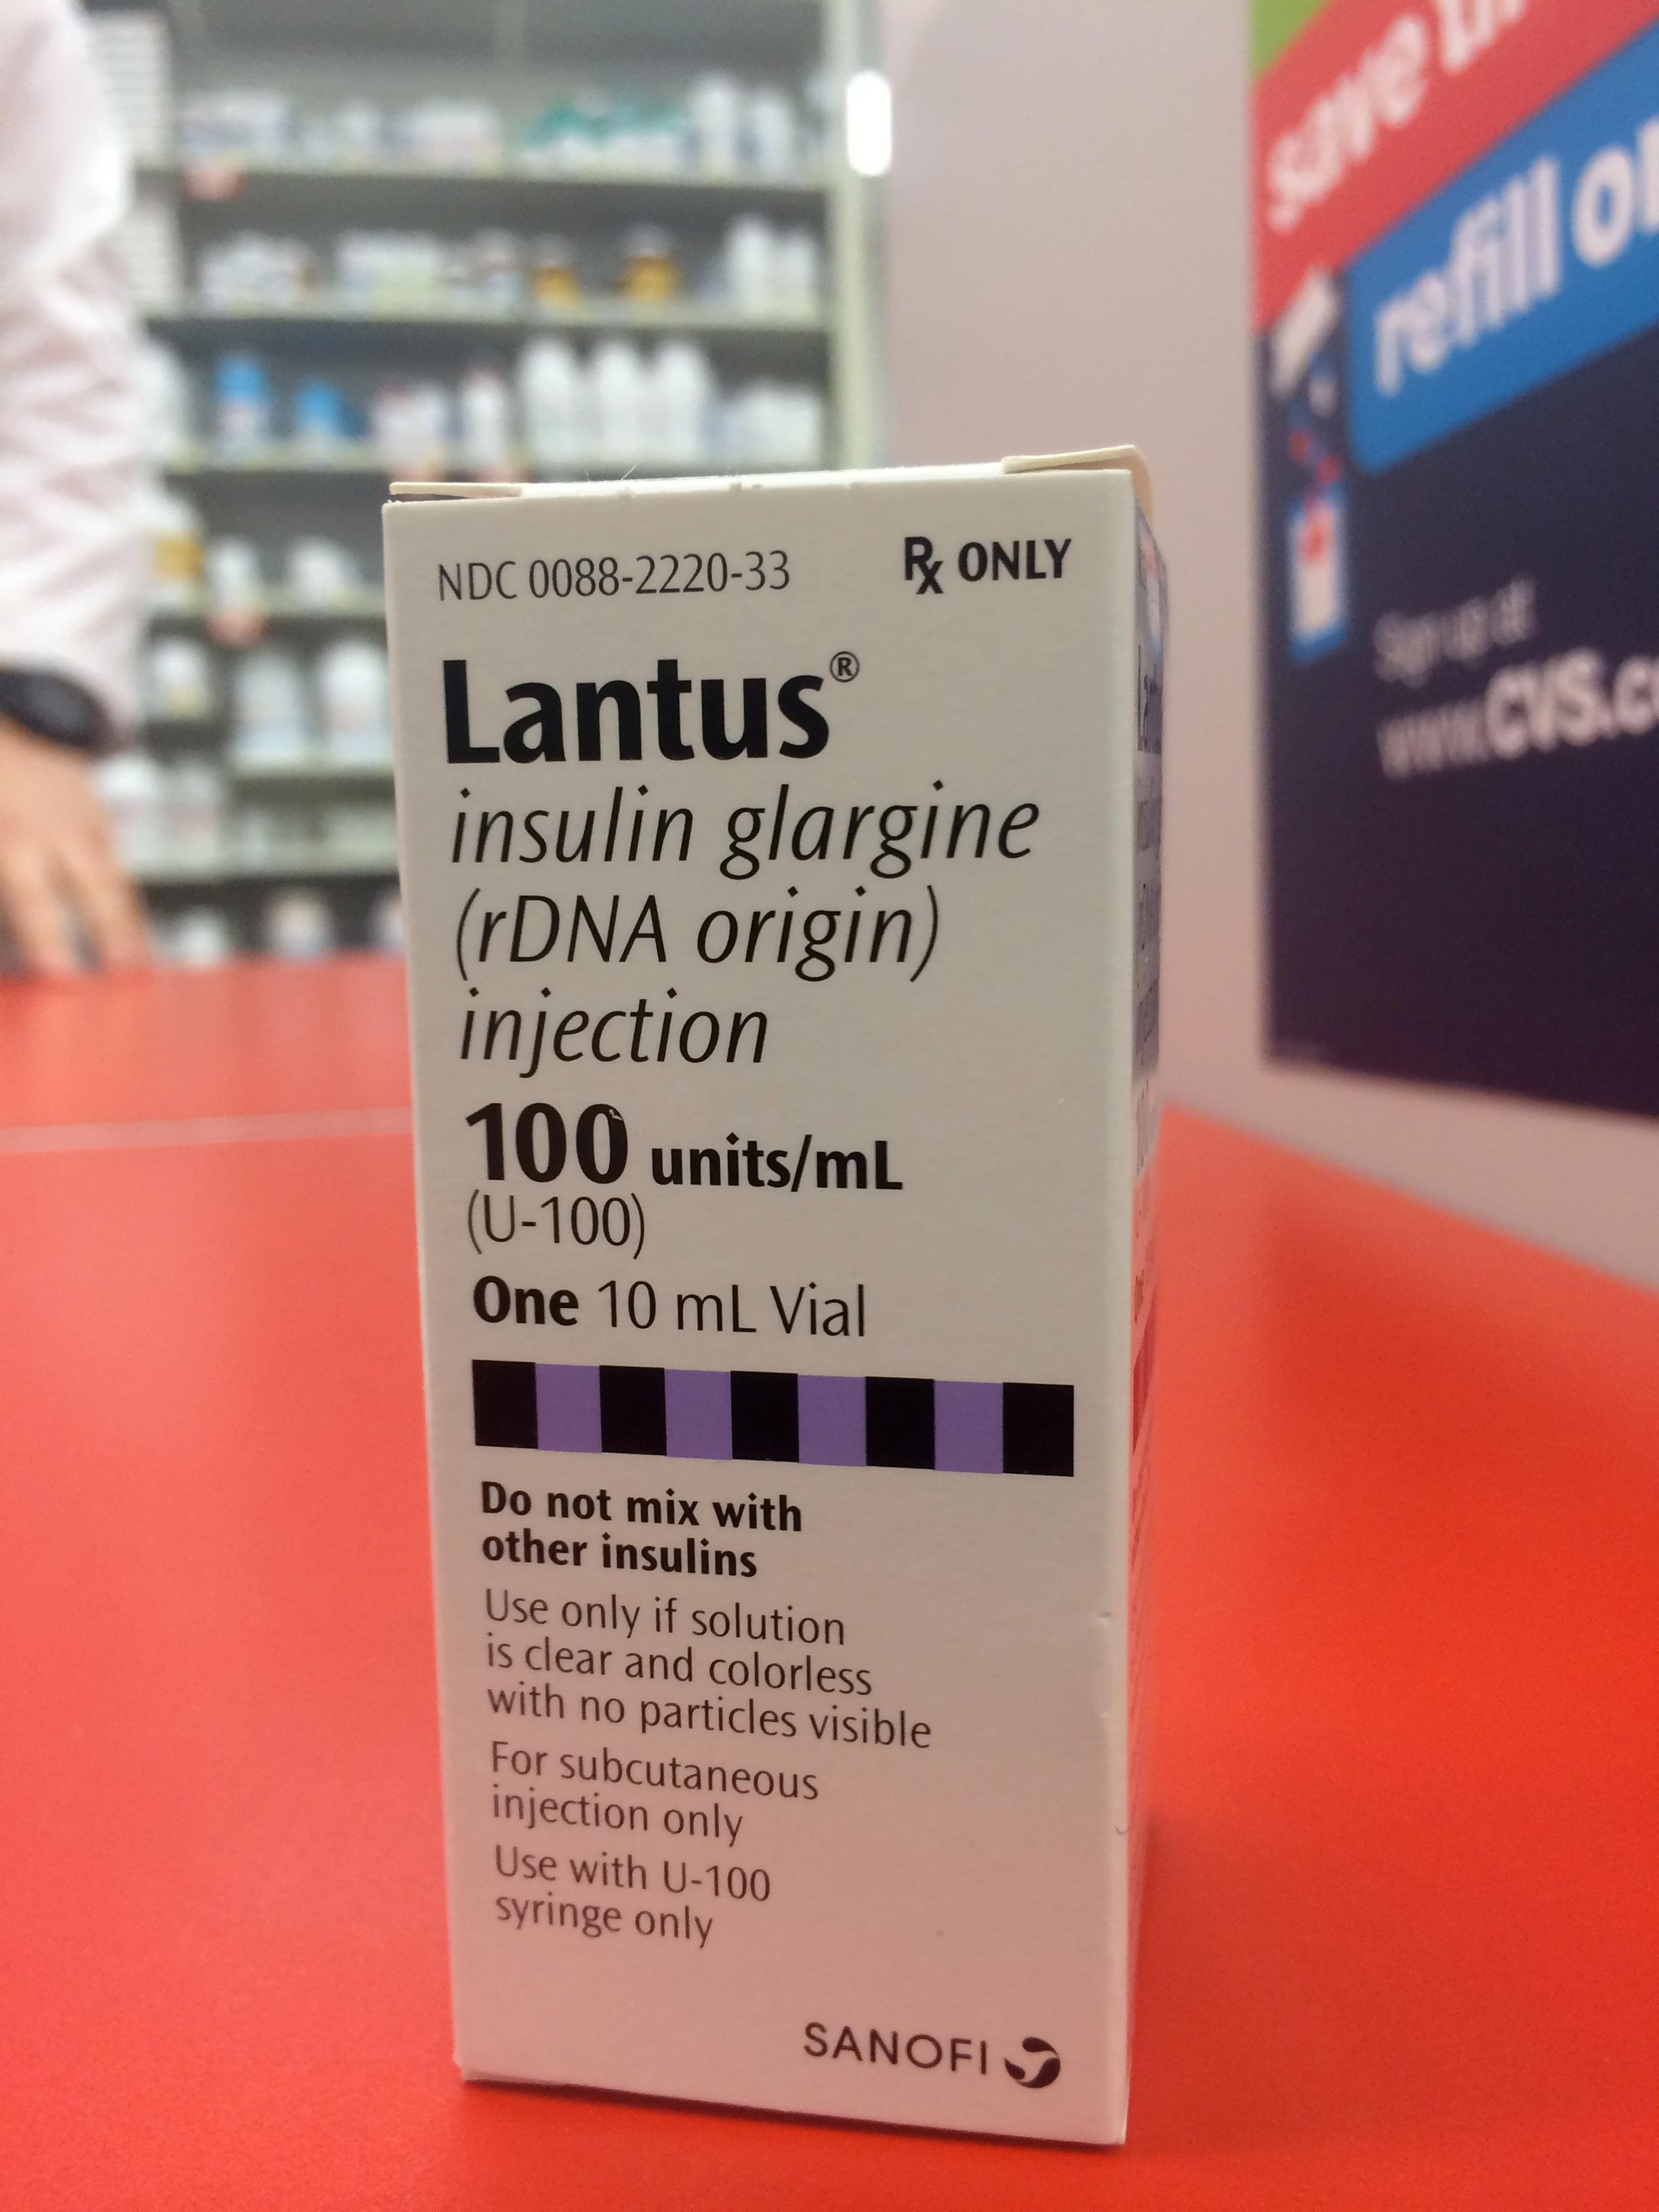 How Many Units Are In A Vial Of Lantus?